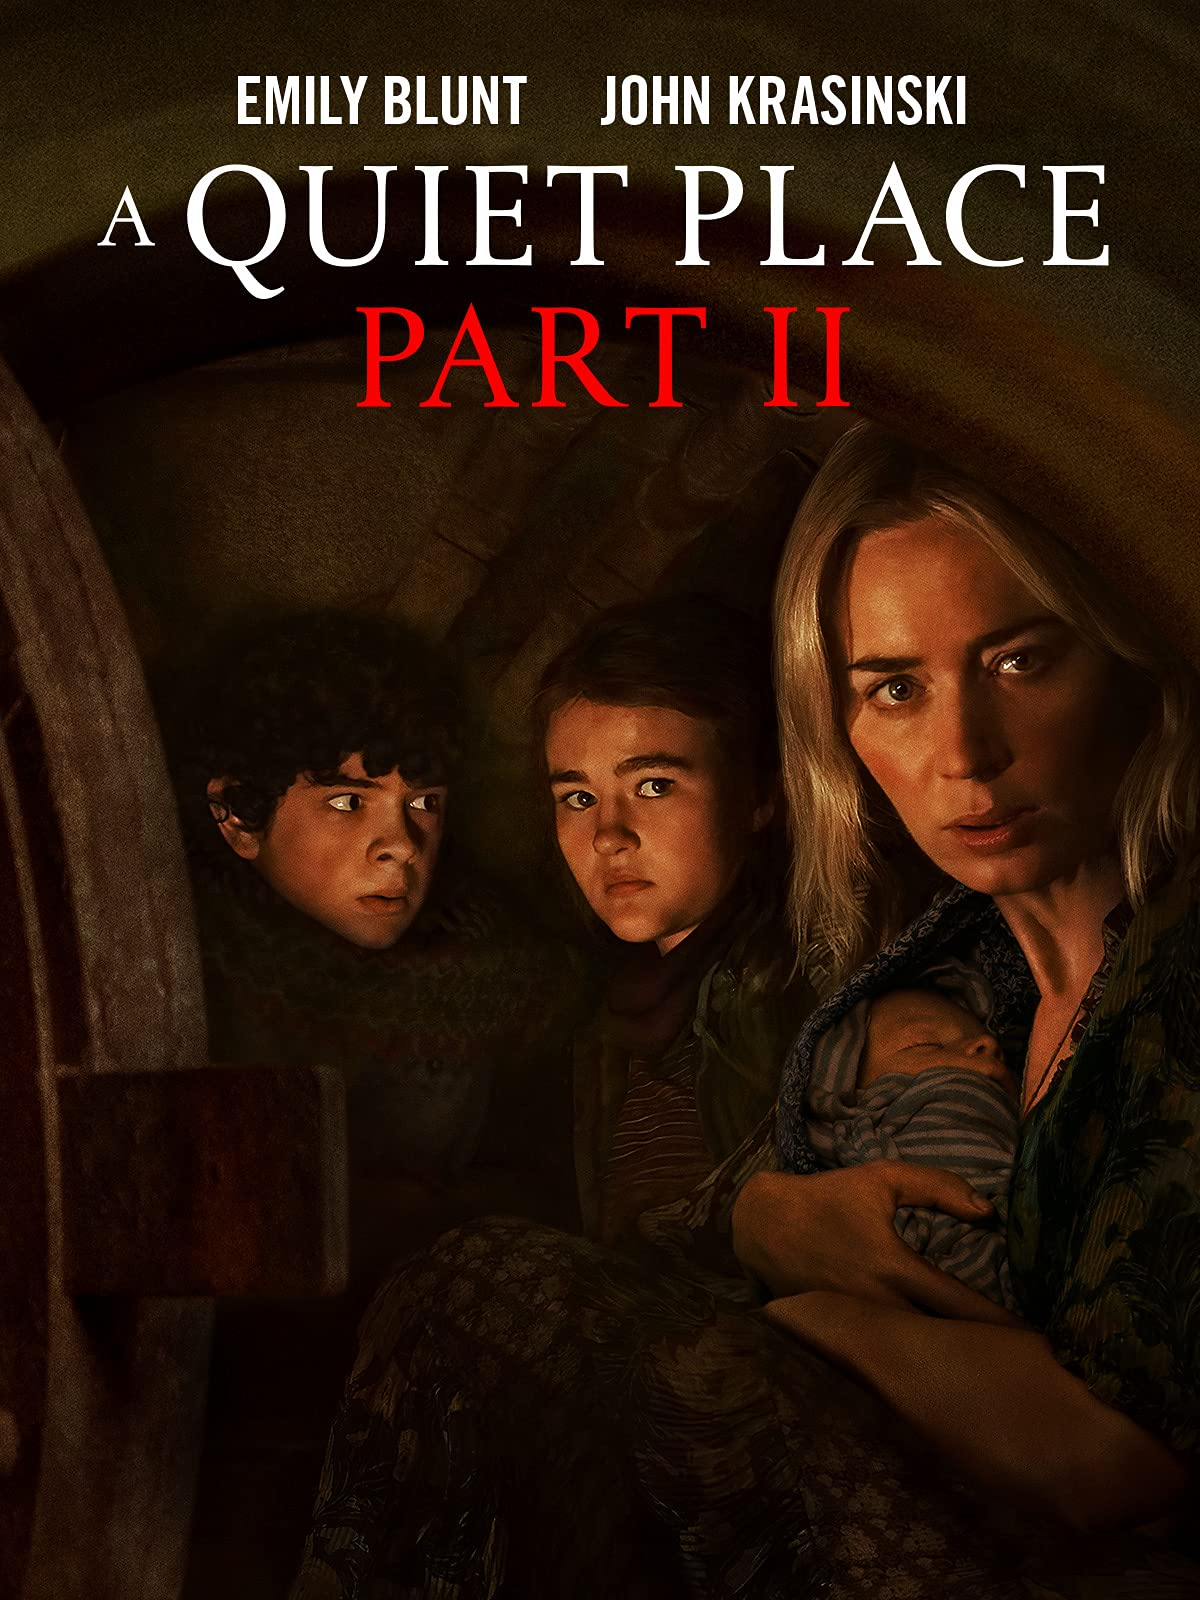 A Quiet Place Part II (2021) English 720p HEVC True HDRip x265 AAC MSubs Full Hollywood Movie 550MB Download